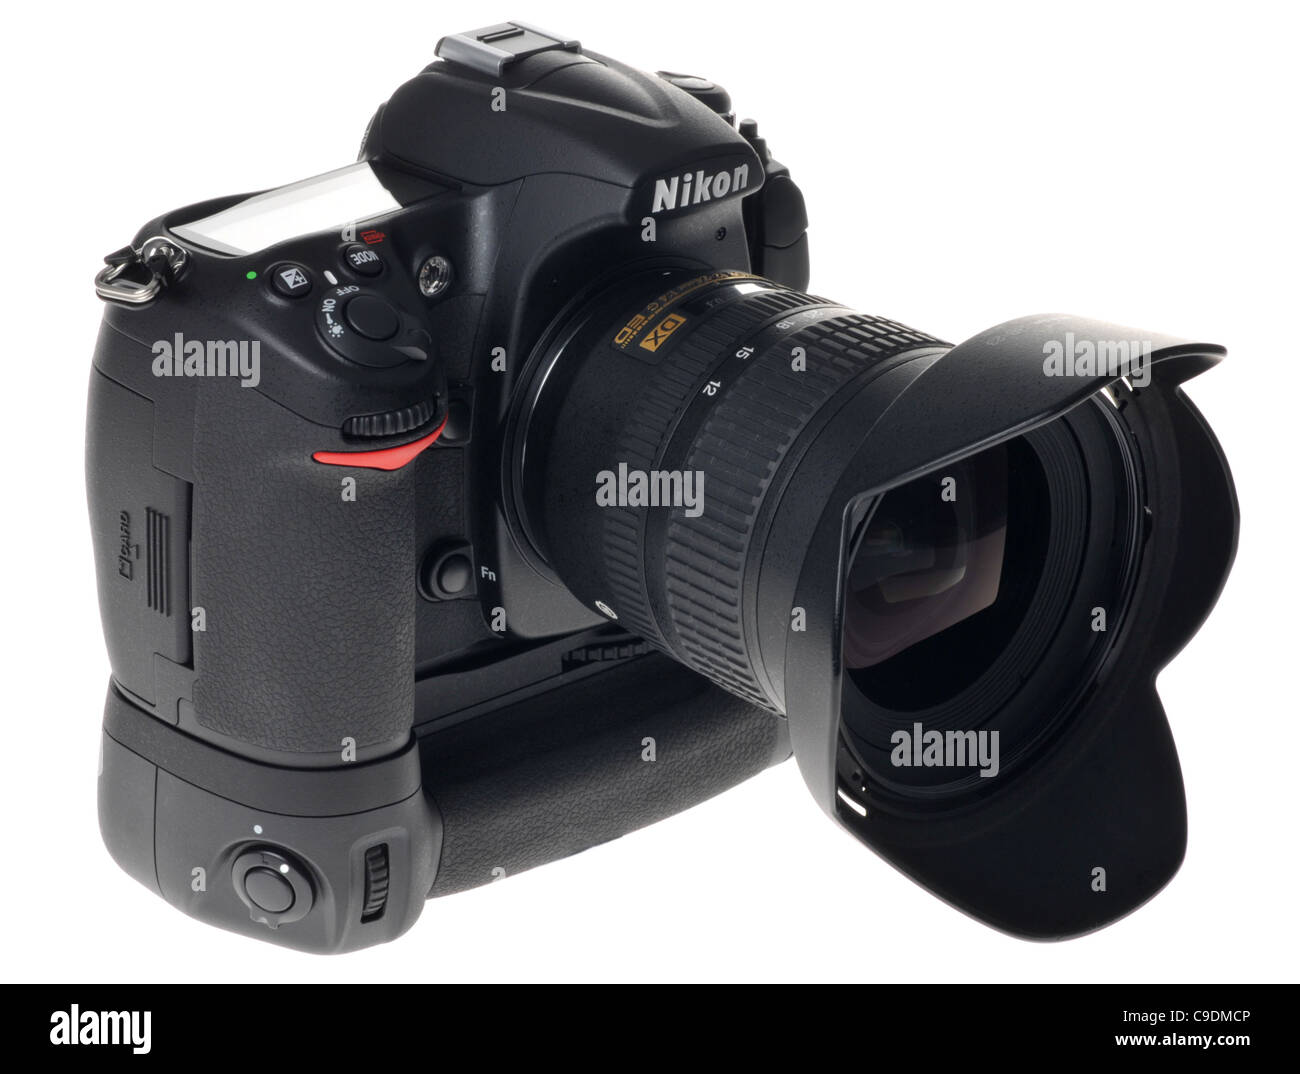 Nikon digital camera - Stock Image